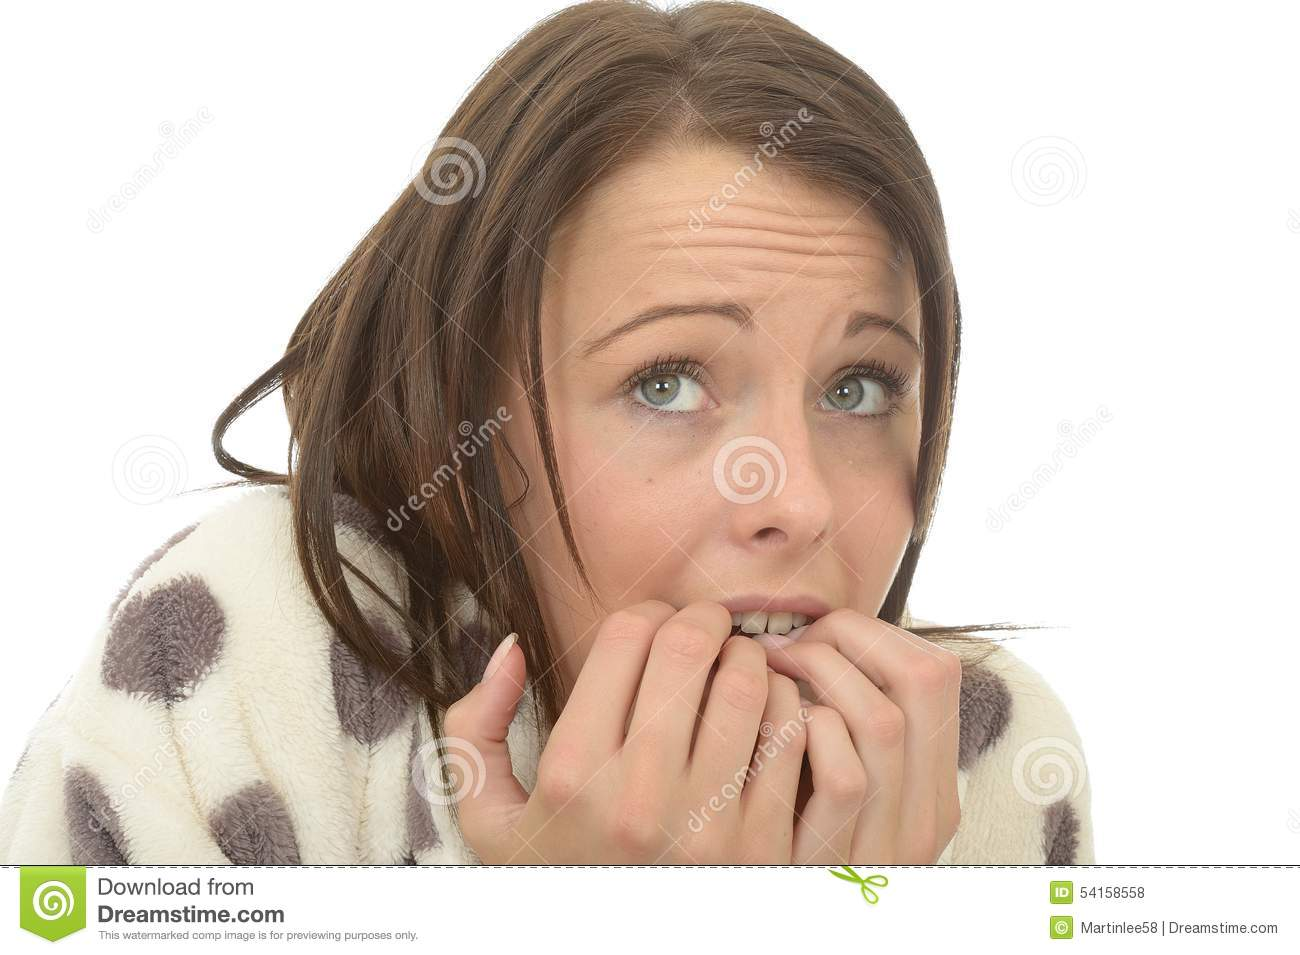 Unstable Nervous Scared Anxious Sad Young Woman Biting Her Nails